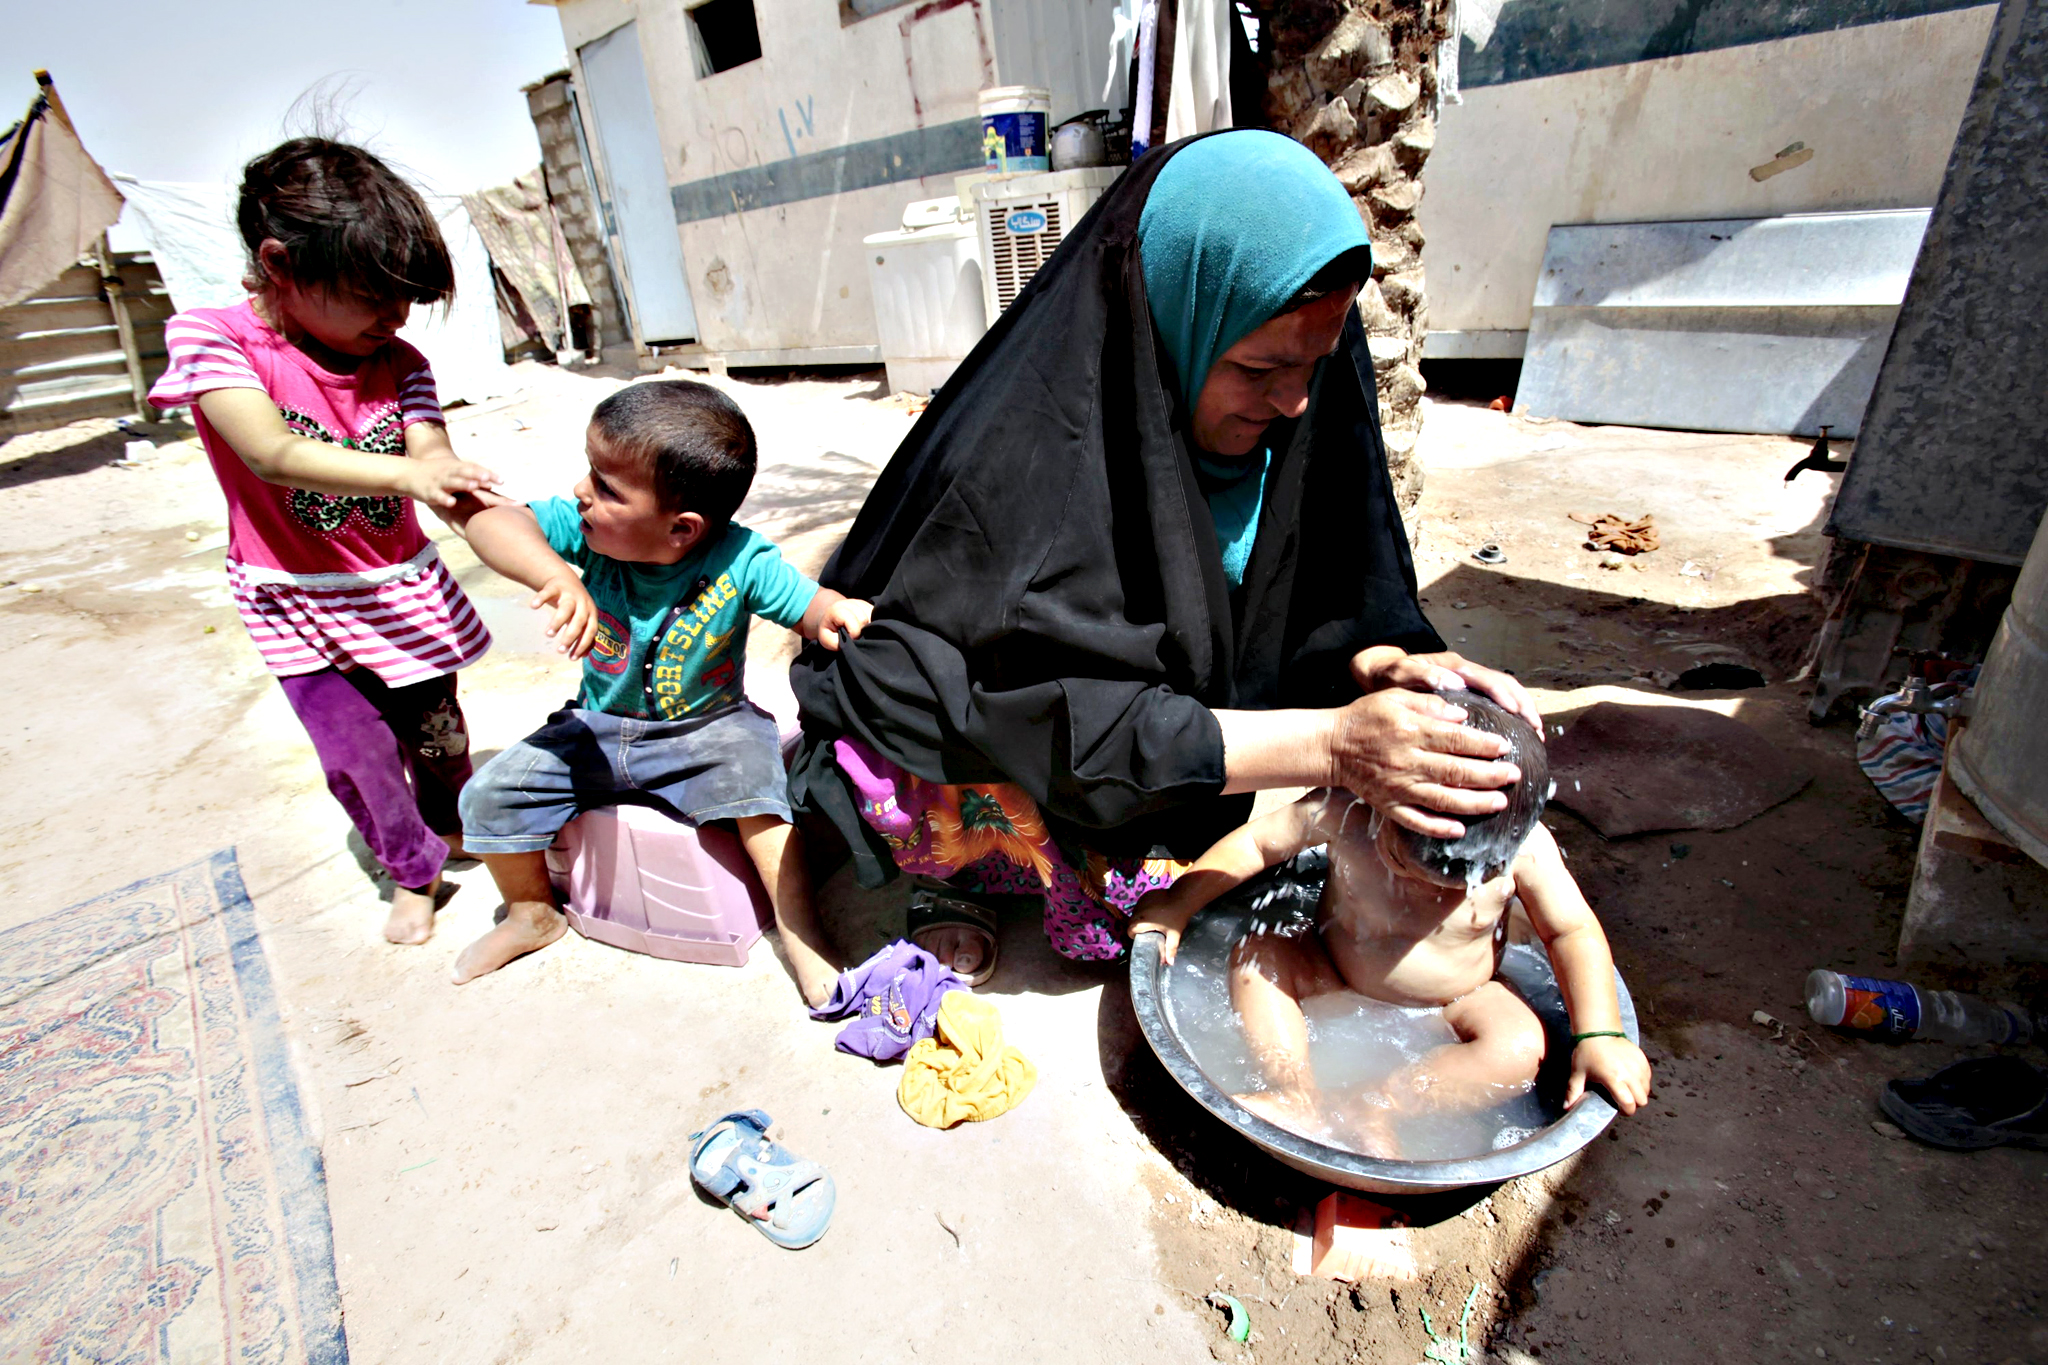 A displaced Sunni woman, fleeing violence from Mosul washes her child on the outskirts of Najaf, south of Baghdad June 24, 2015